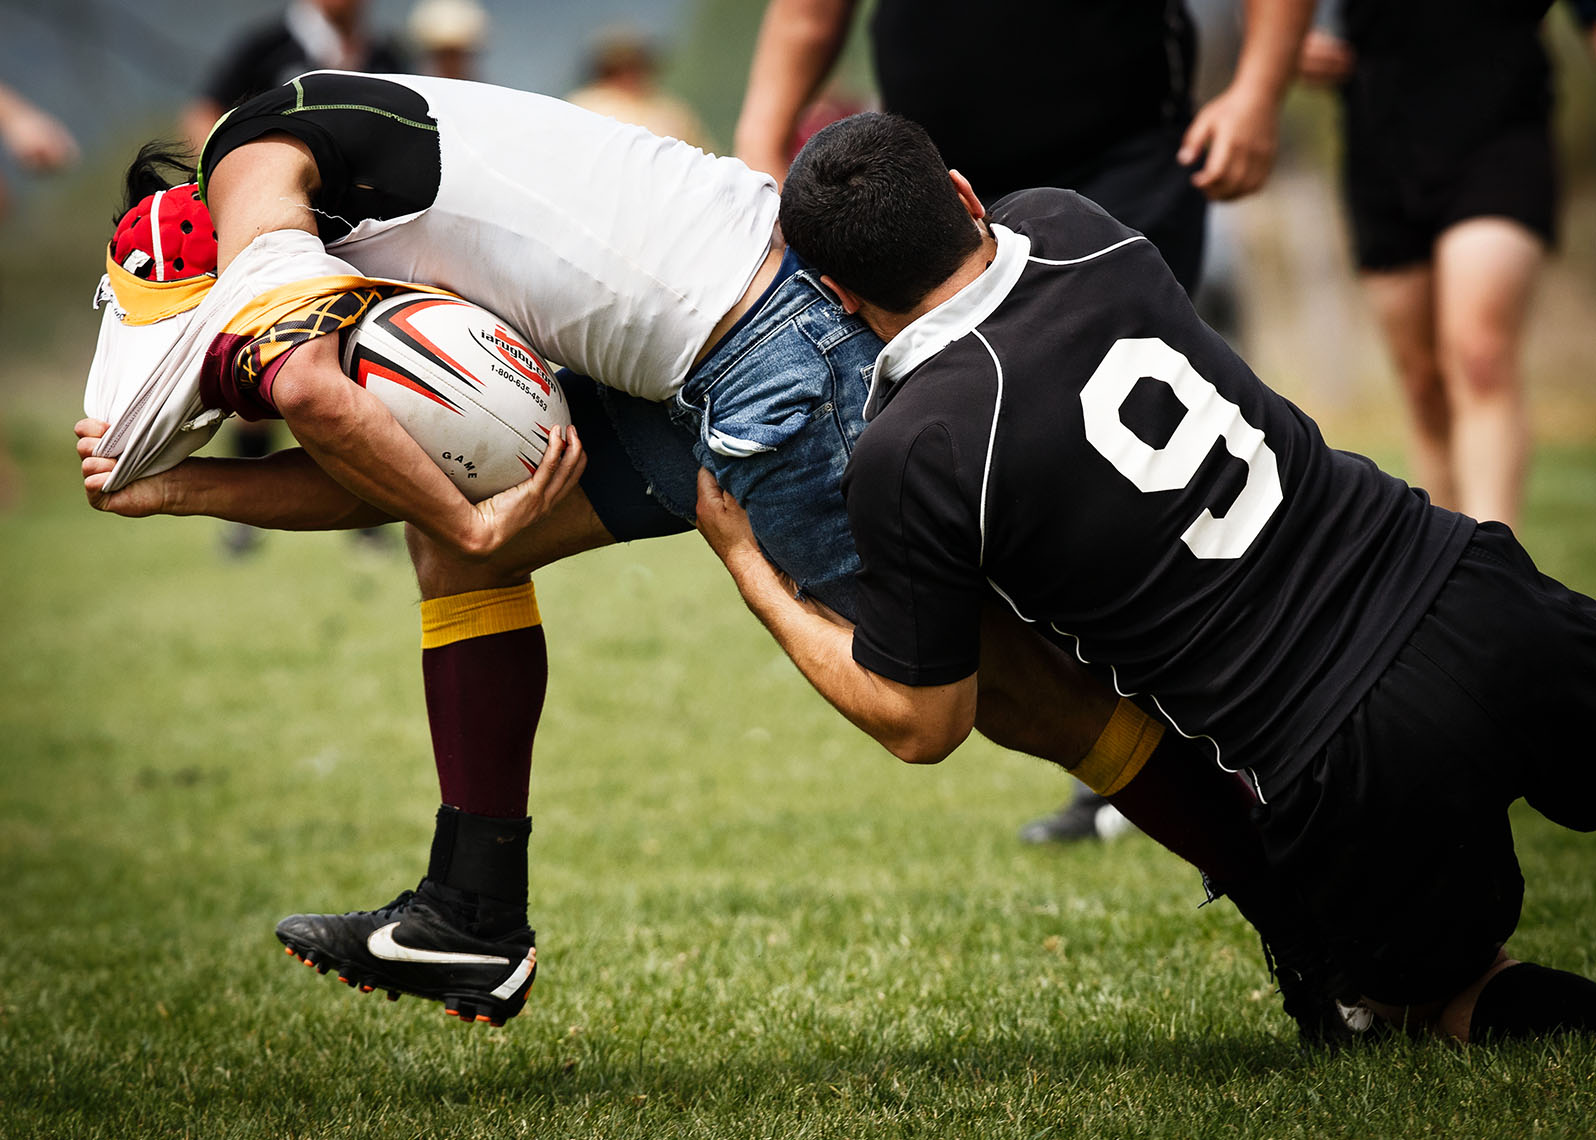 2013.05.12_Rugby_Maggotfest_DRoot_6095_F_APF